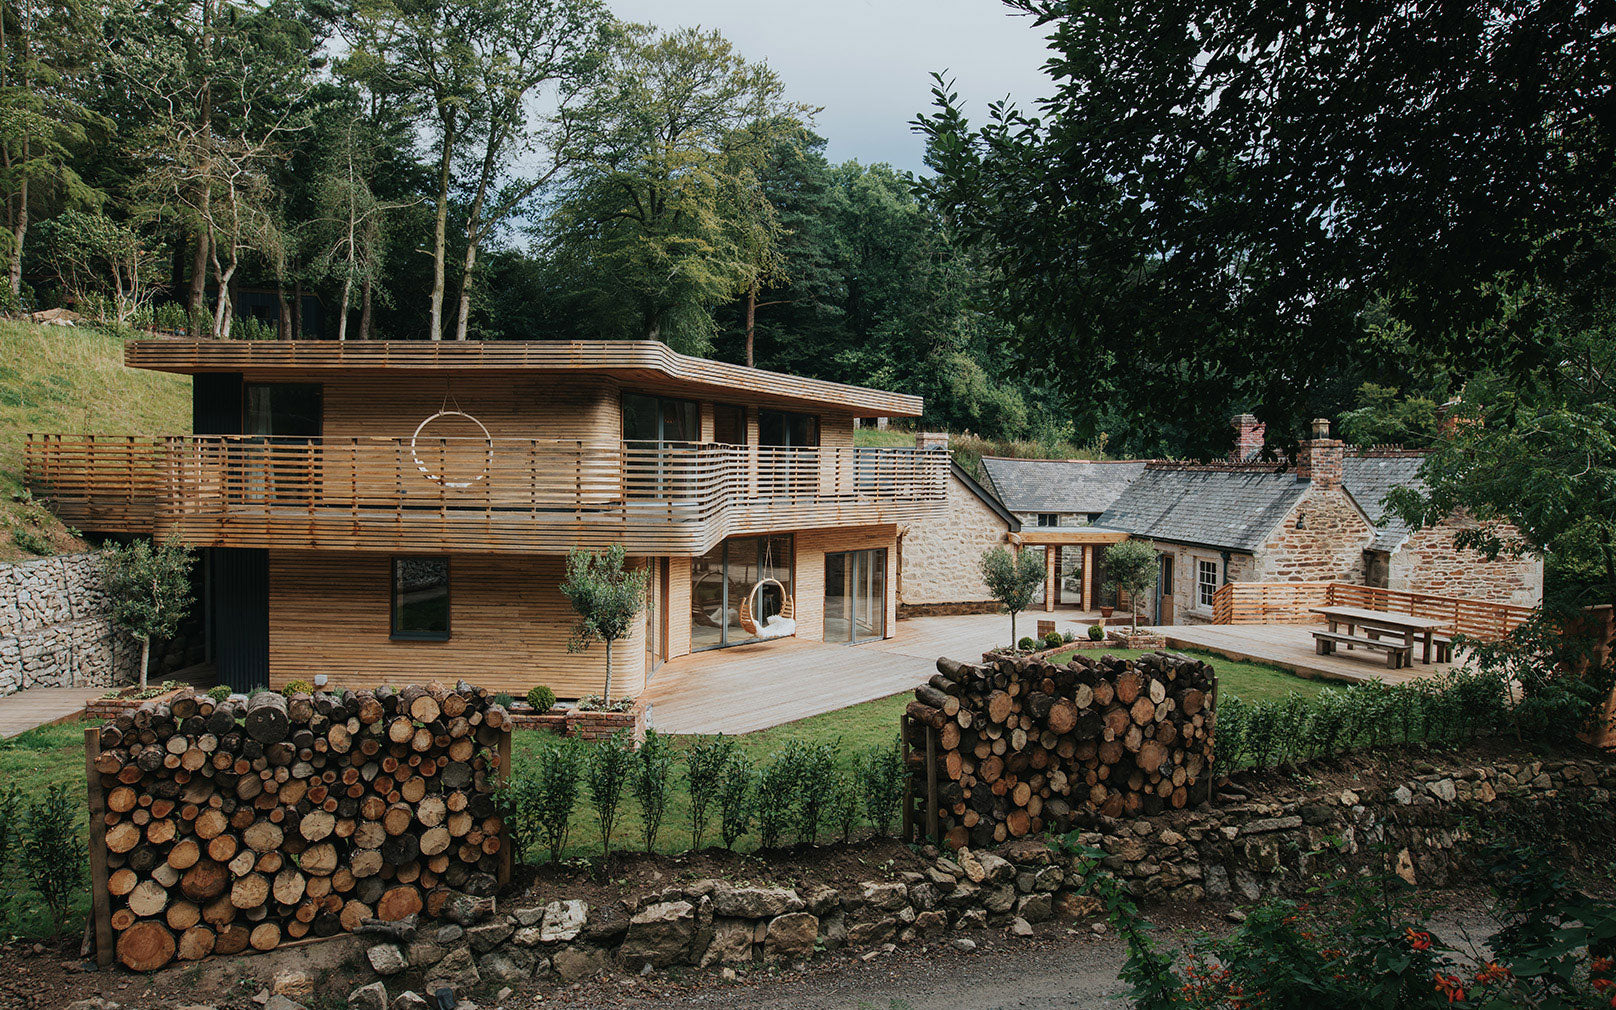 Tom Raffield's steam-bent-wood house.